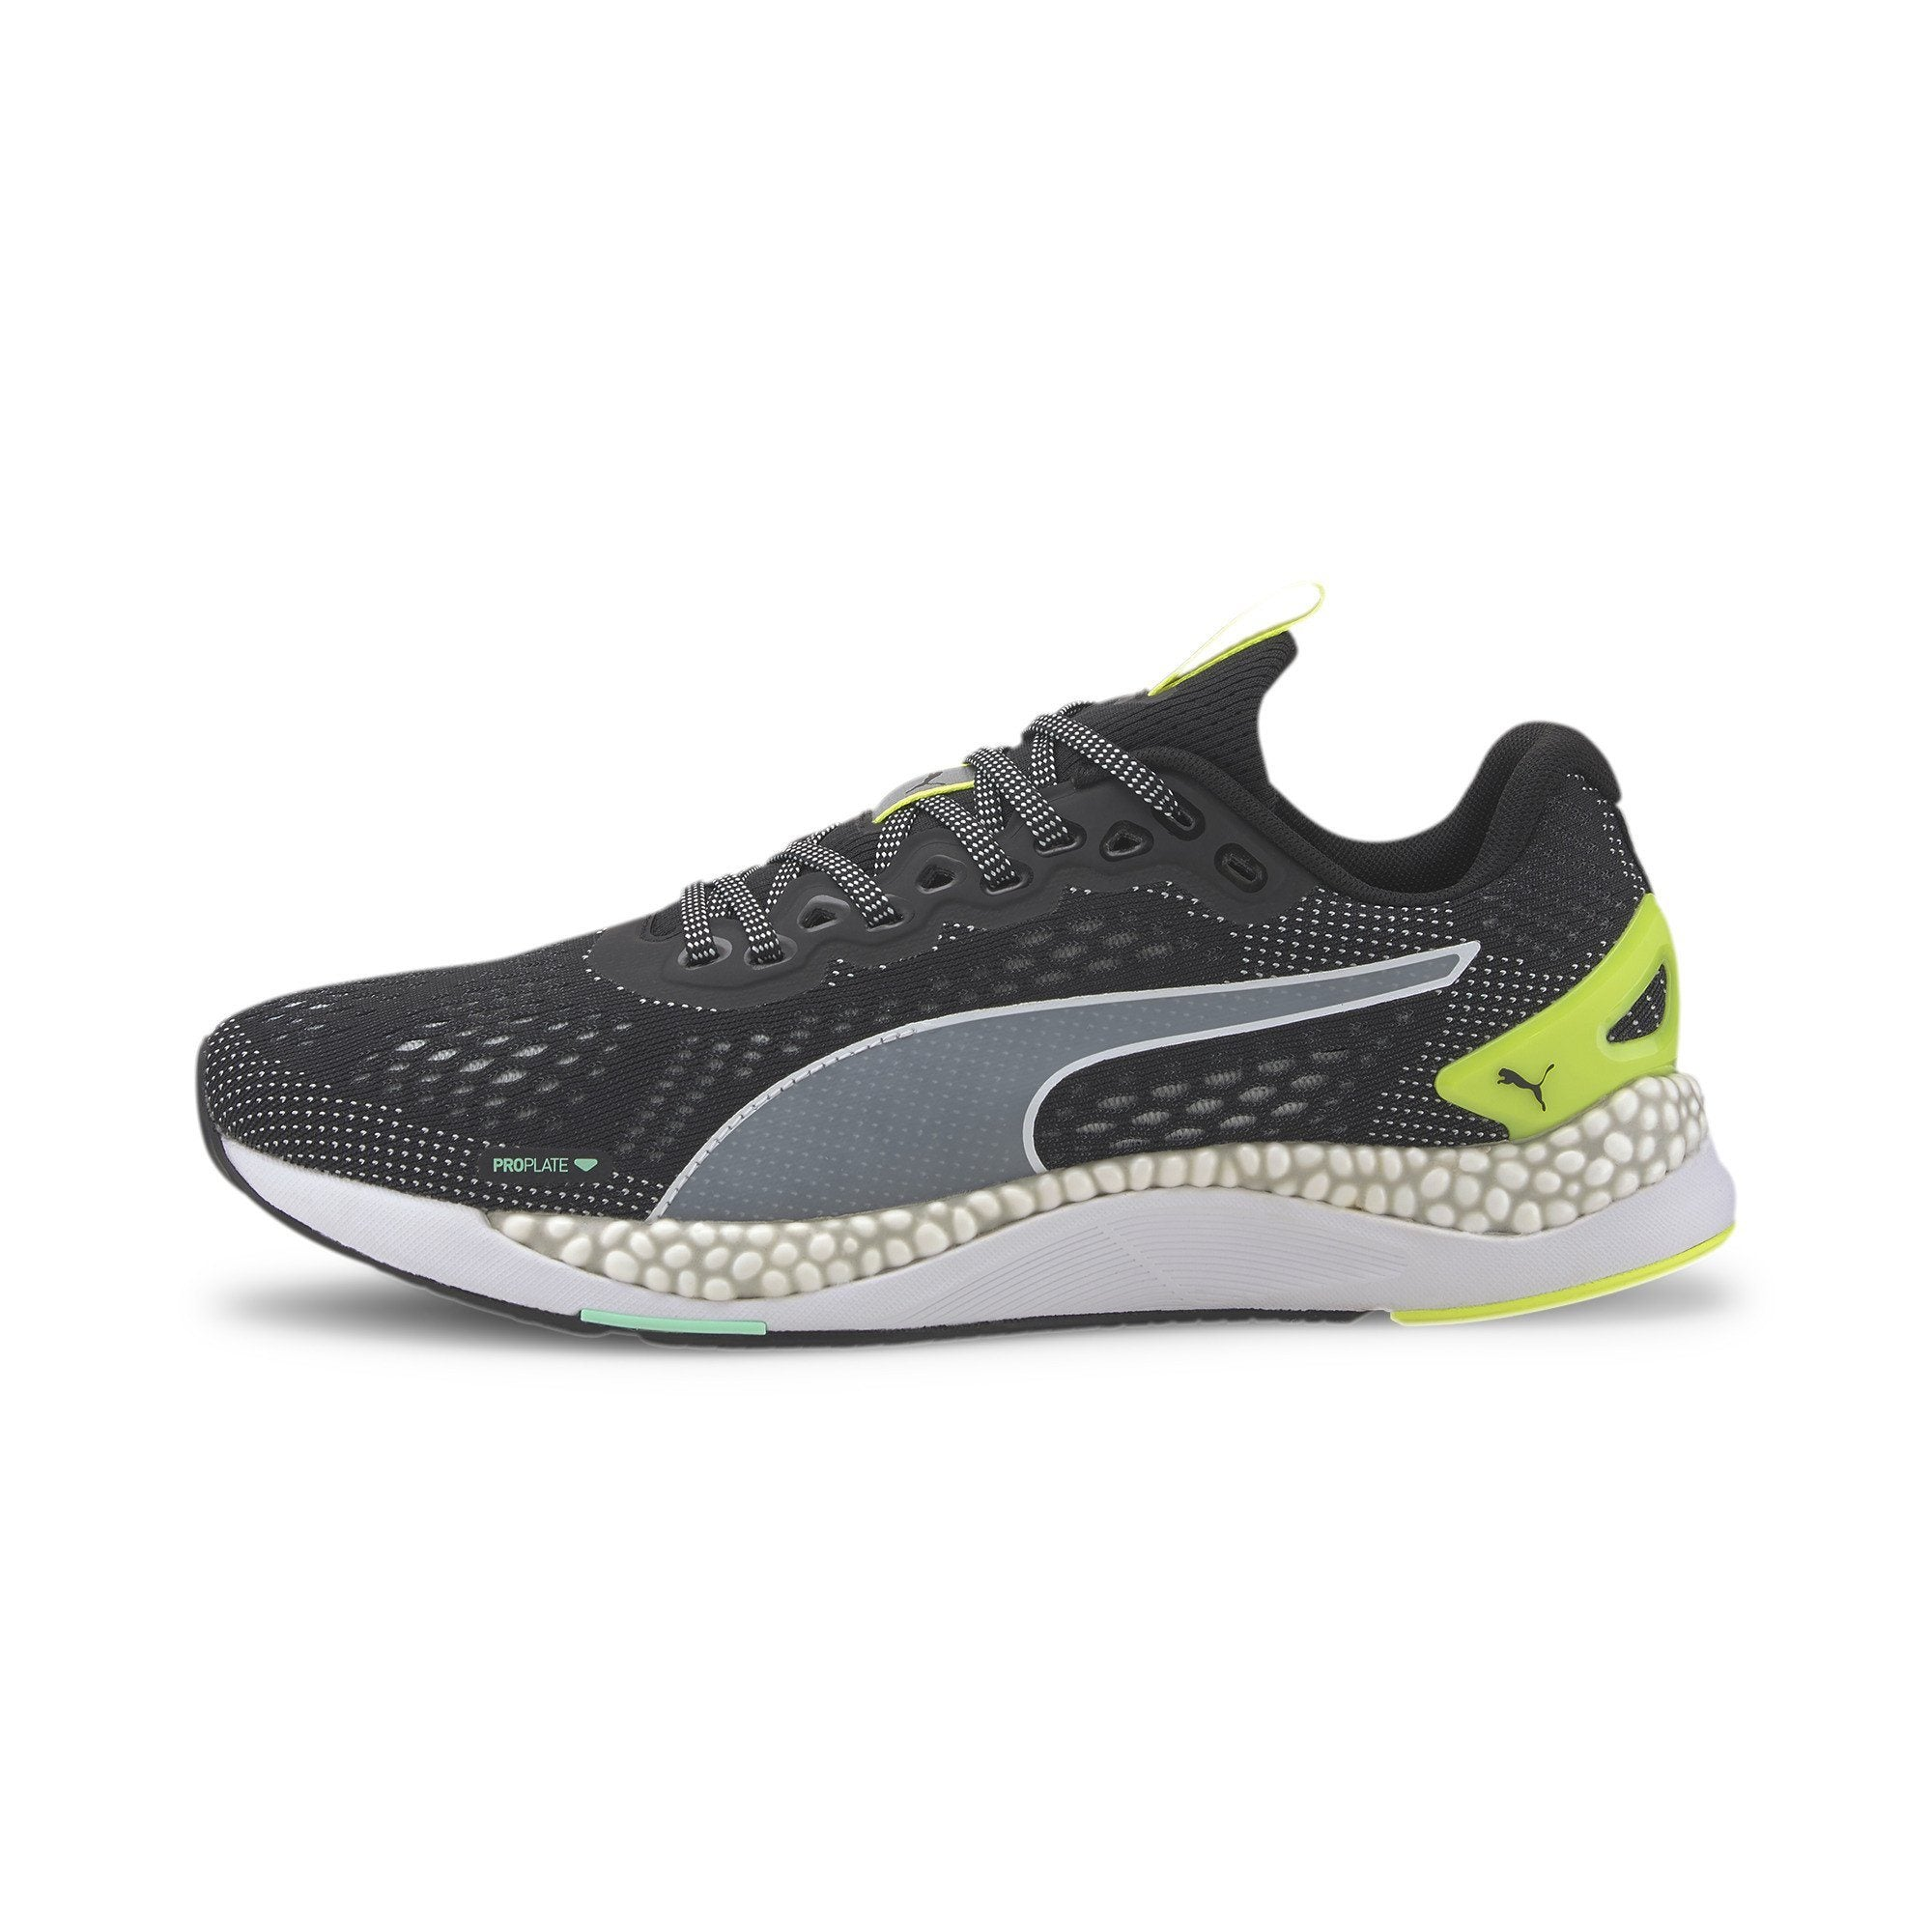 Puma Mens Speed 600 2 - Puma Black/Yellow Alert SP-Footwear-Mens Puma